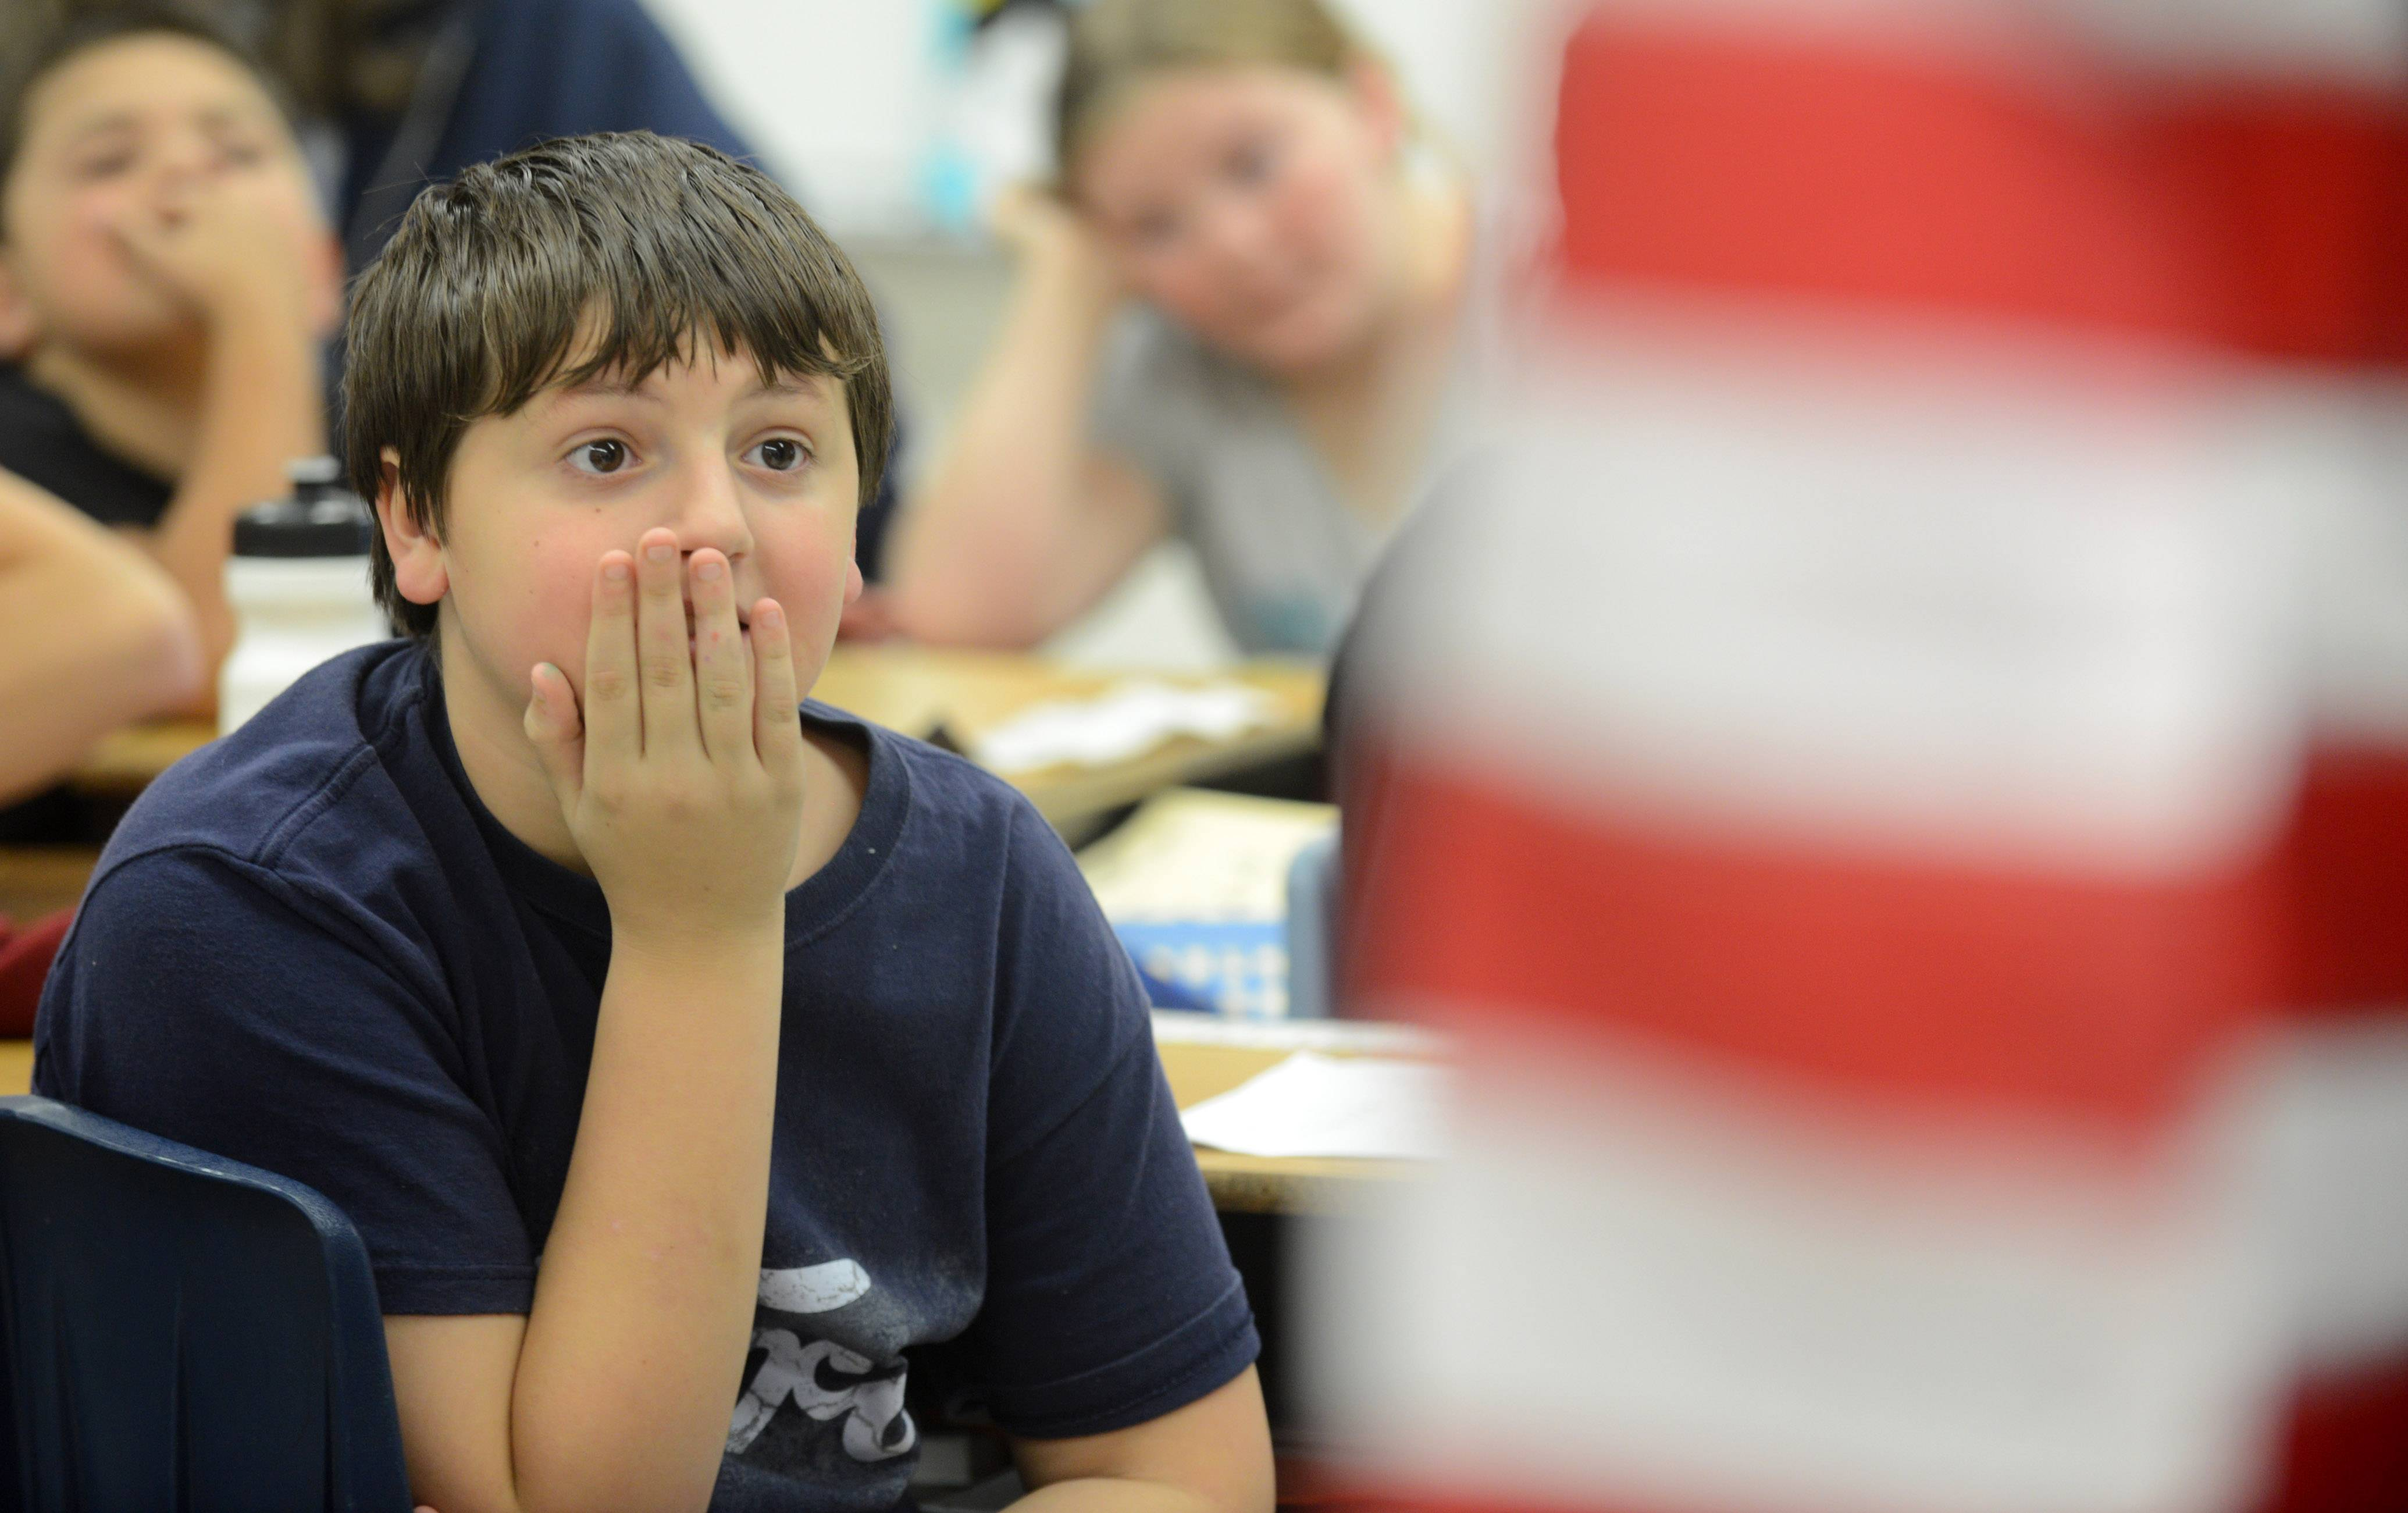 Zach Conro watches with rapt attention during a flag presentation for fifth-graders Friday at Willard Elementary School in South Elgin.